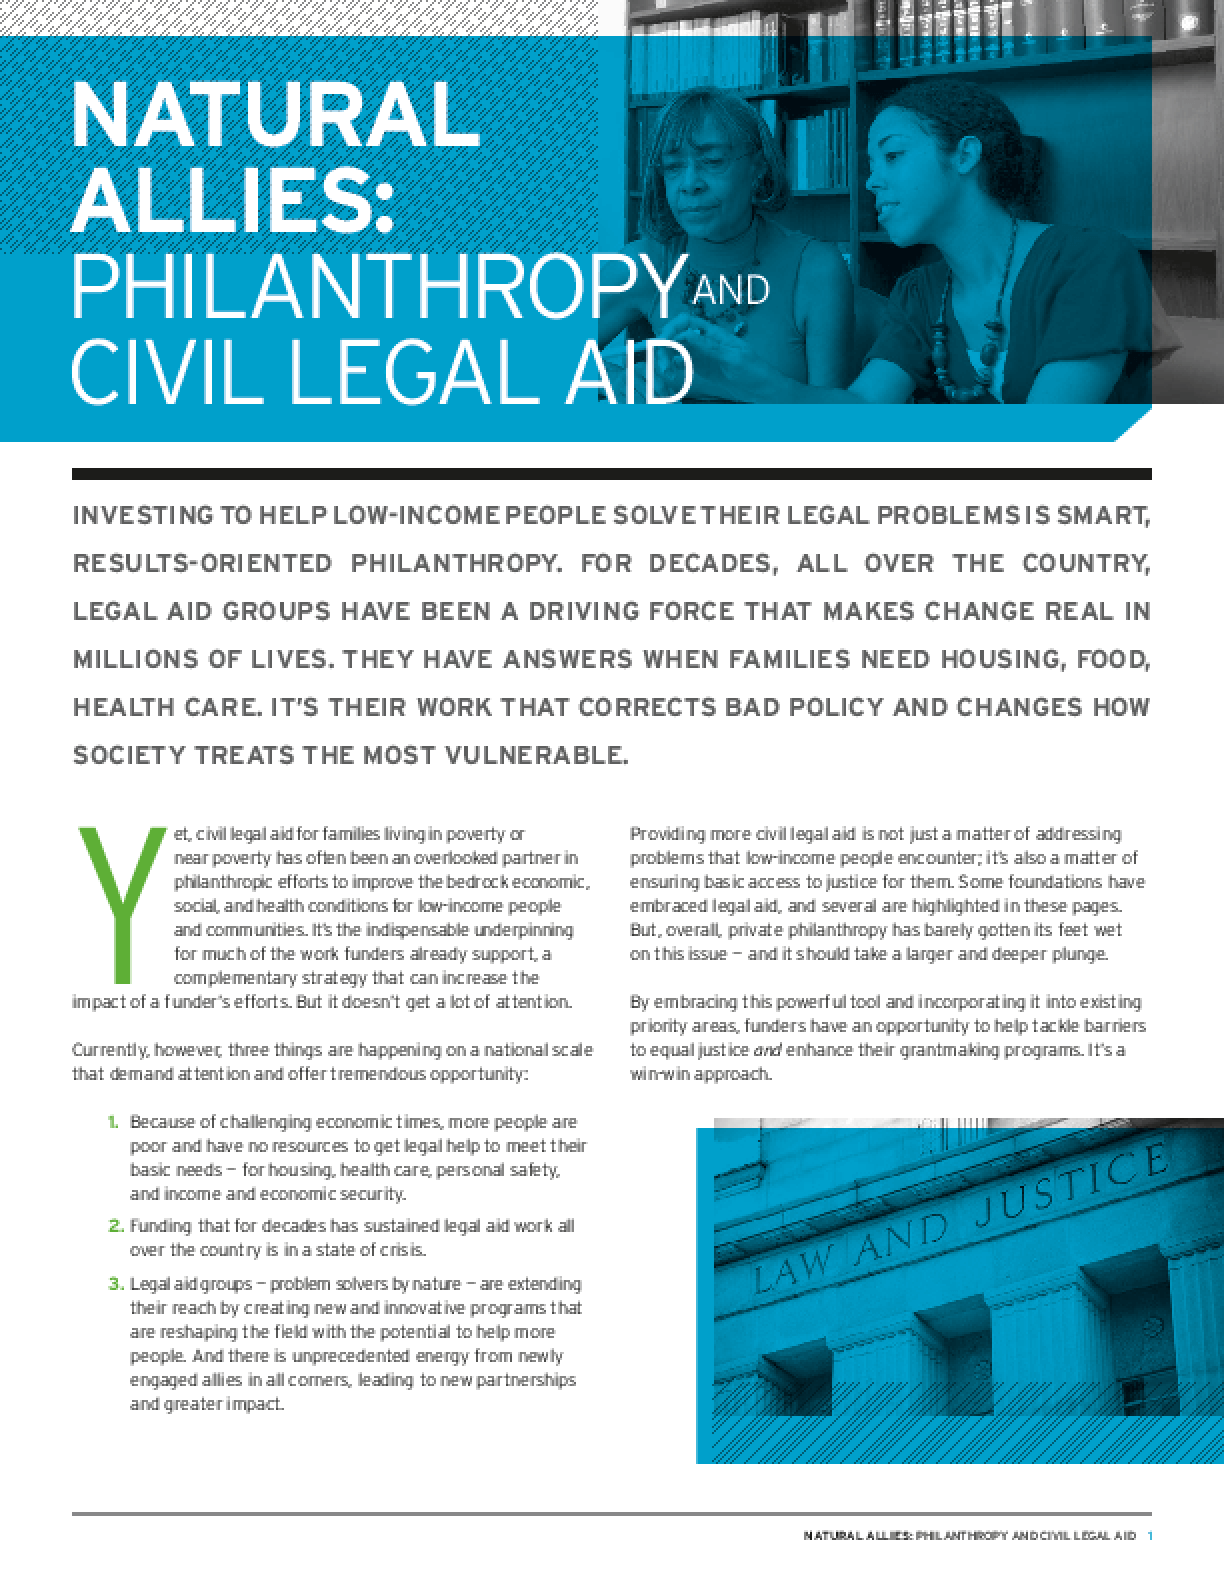 Natural Allies: Philanthropy and Civil Legal Aid